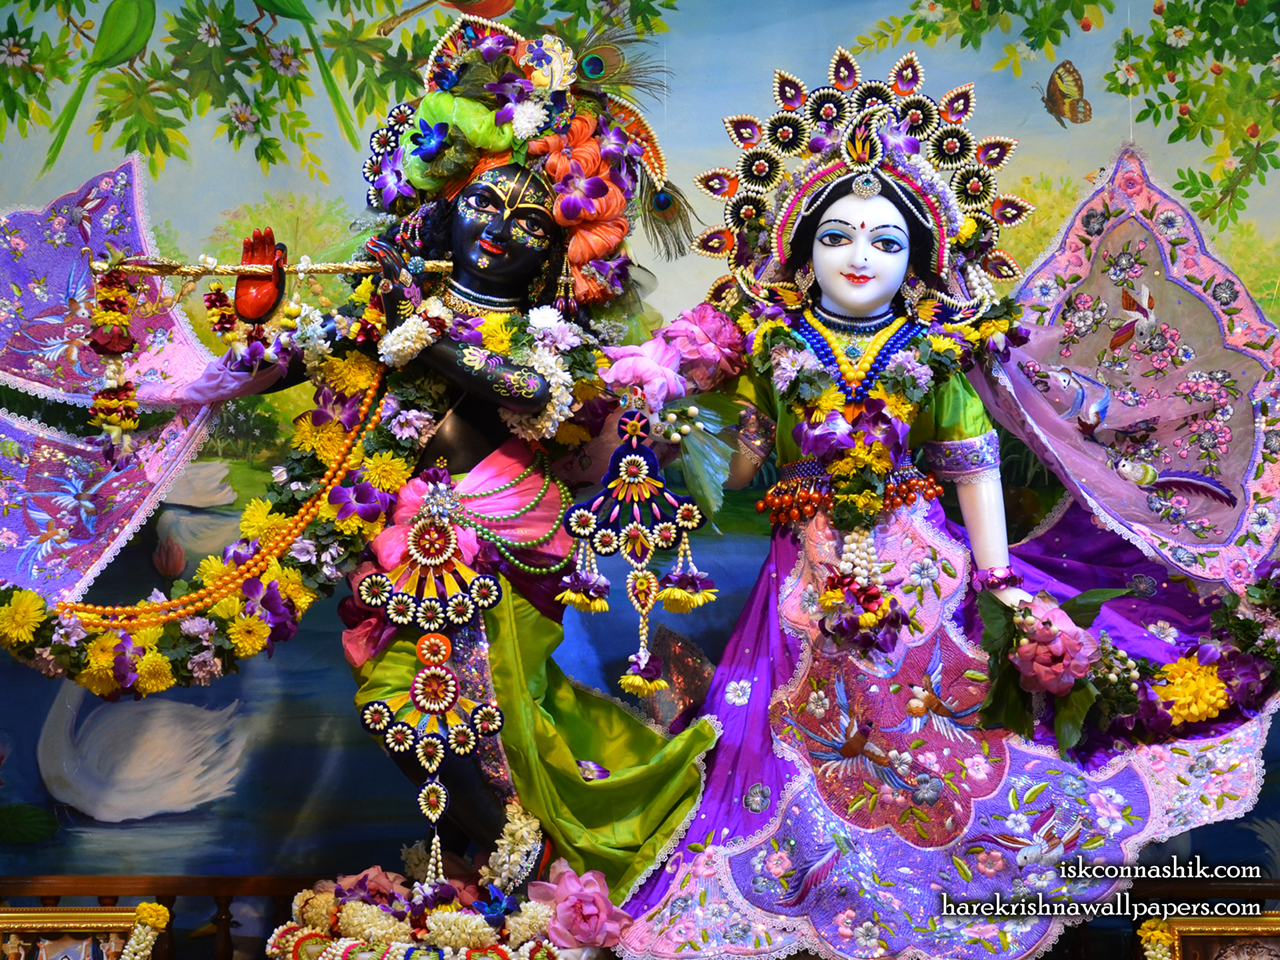 Sri Sri Radha Madan Gopal Wallpaper (021) Size 1280x960 Download